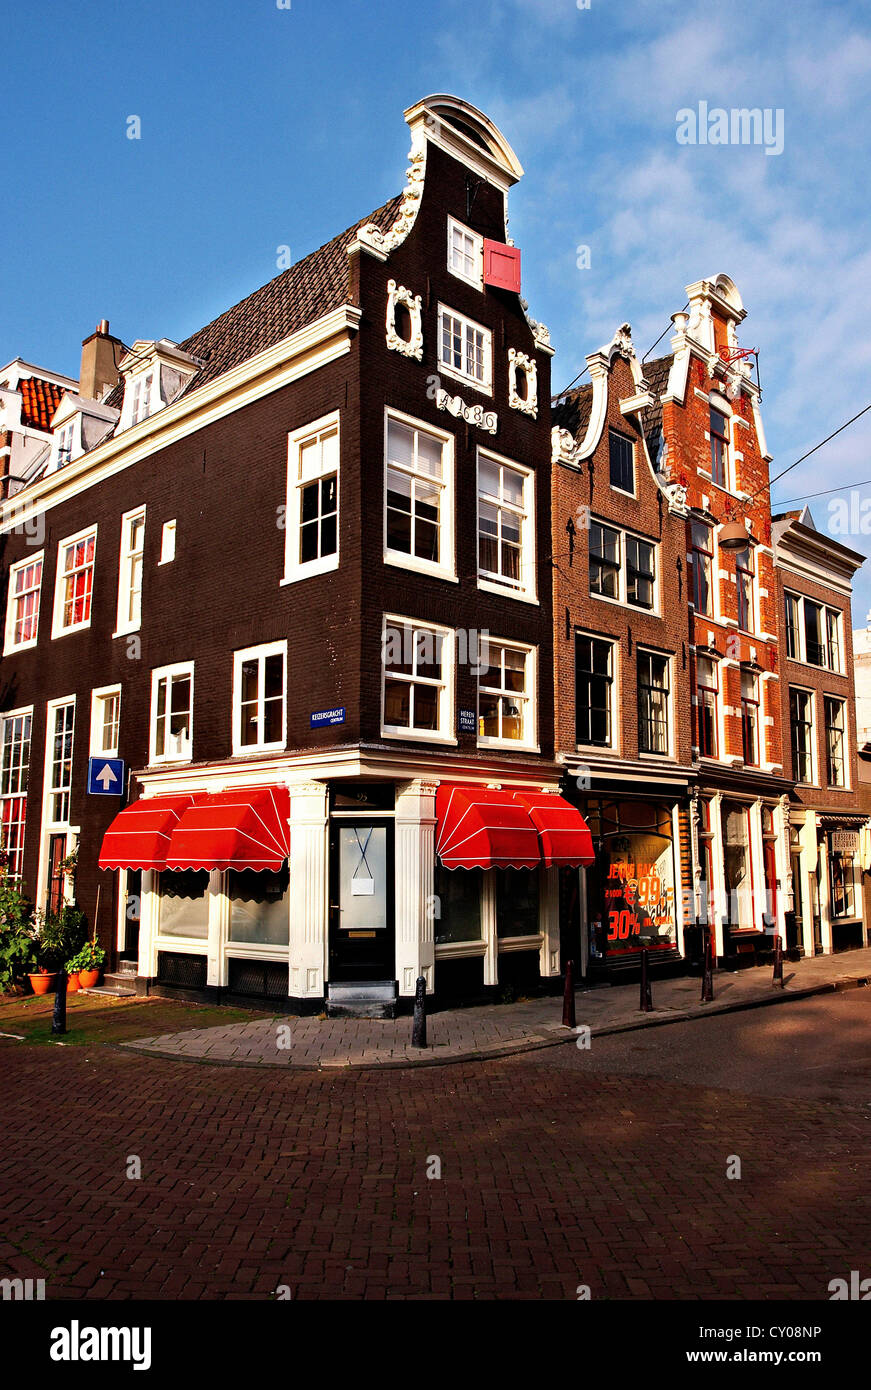 Netherlands, North Holland, Amsterdam, Traditional Dutch architecture along the bridges and canals. - Stock Image